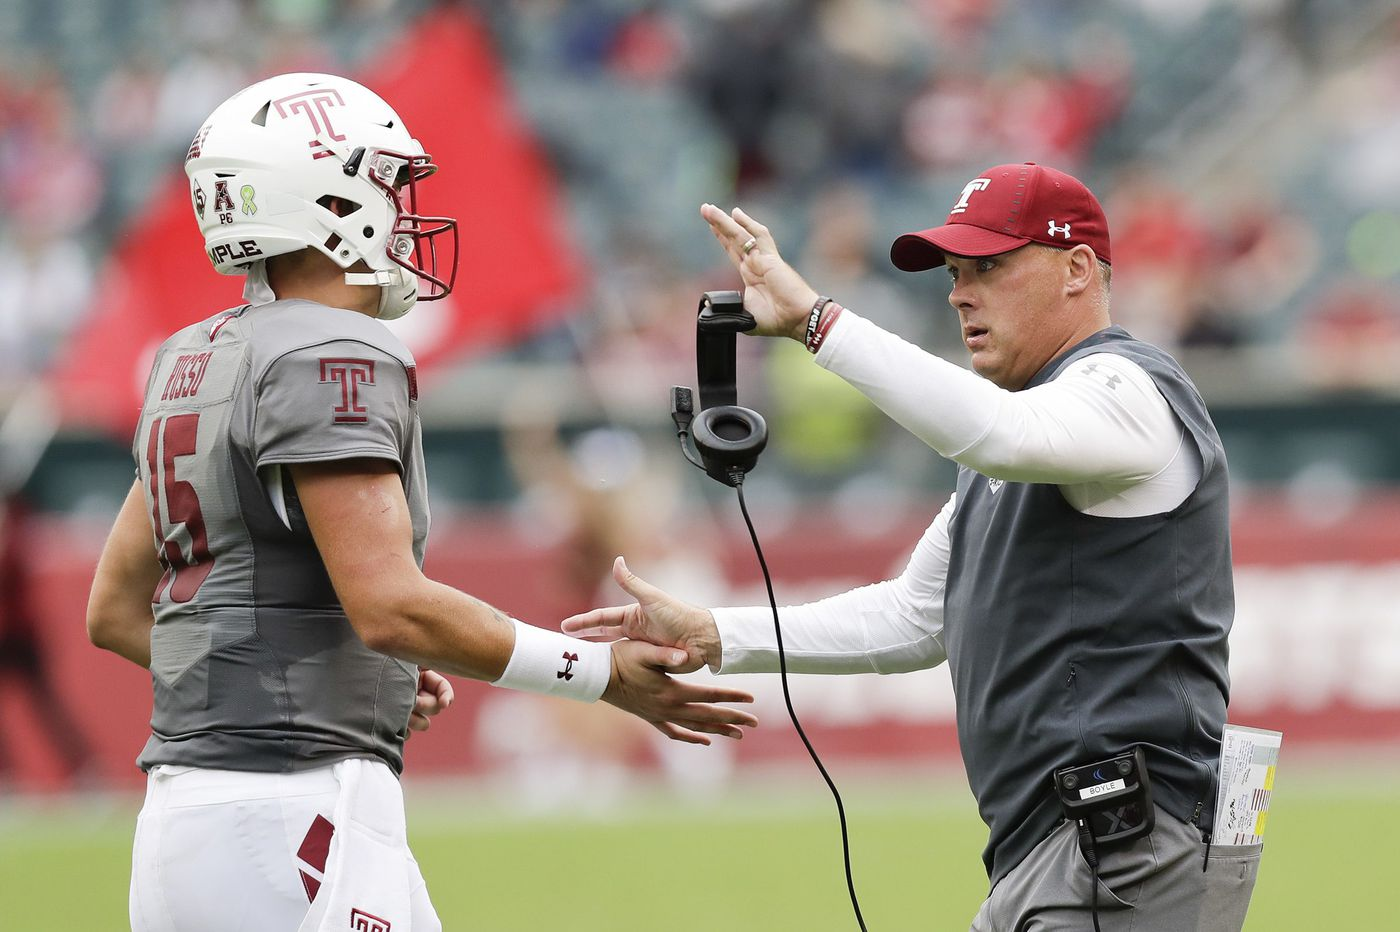 Here is what Temple coach Geoff Collins is saying